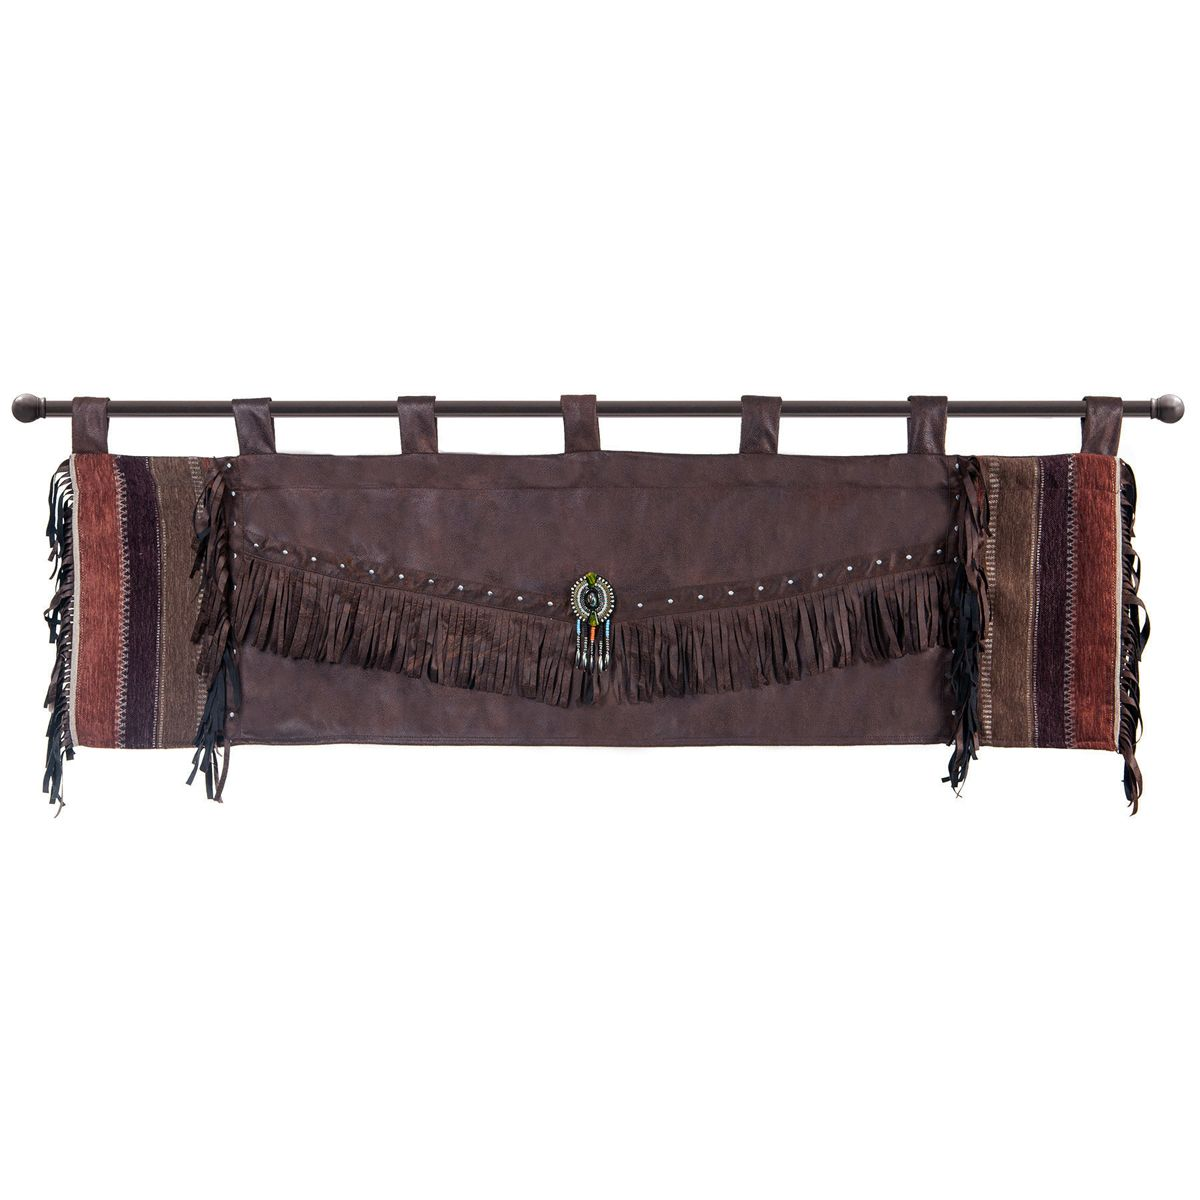 Sonoran Sky Valance - OUT OF STOCK UNTIL 12/10/2020